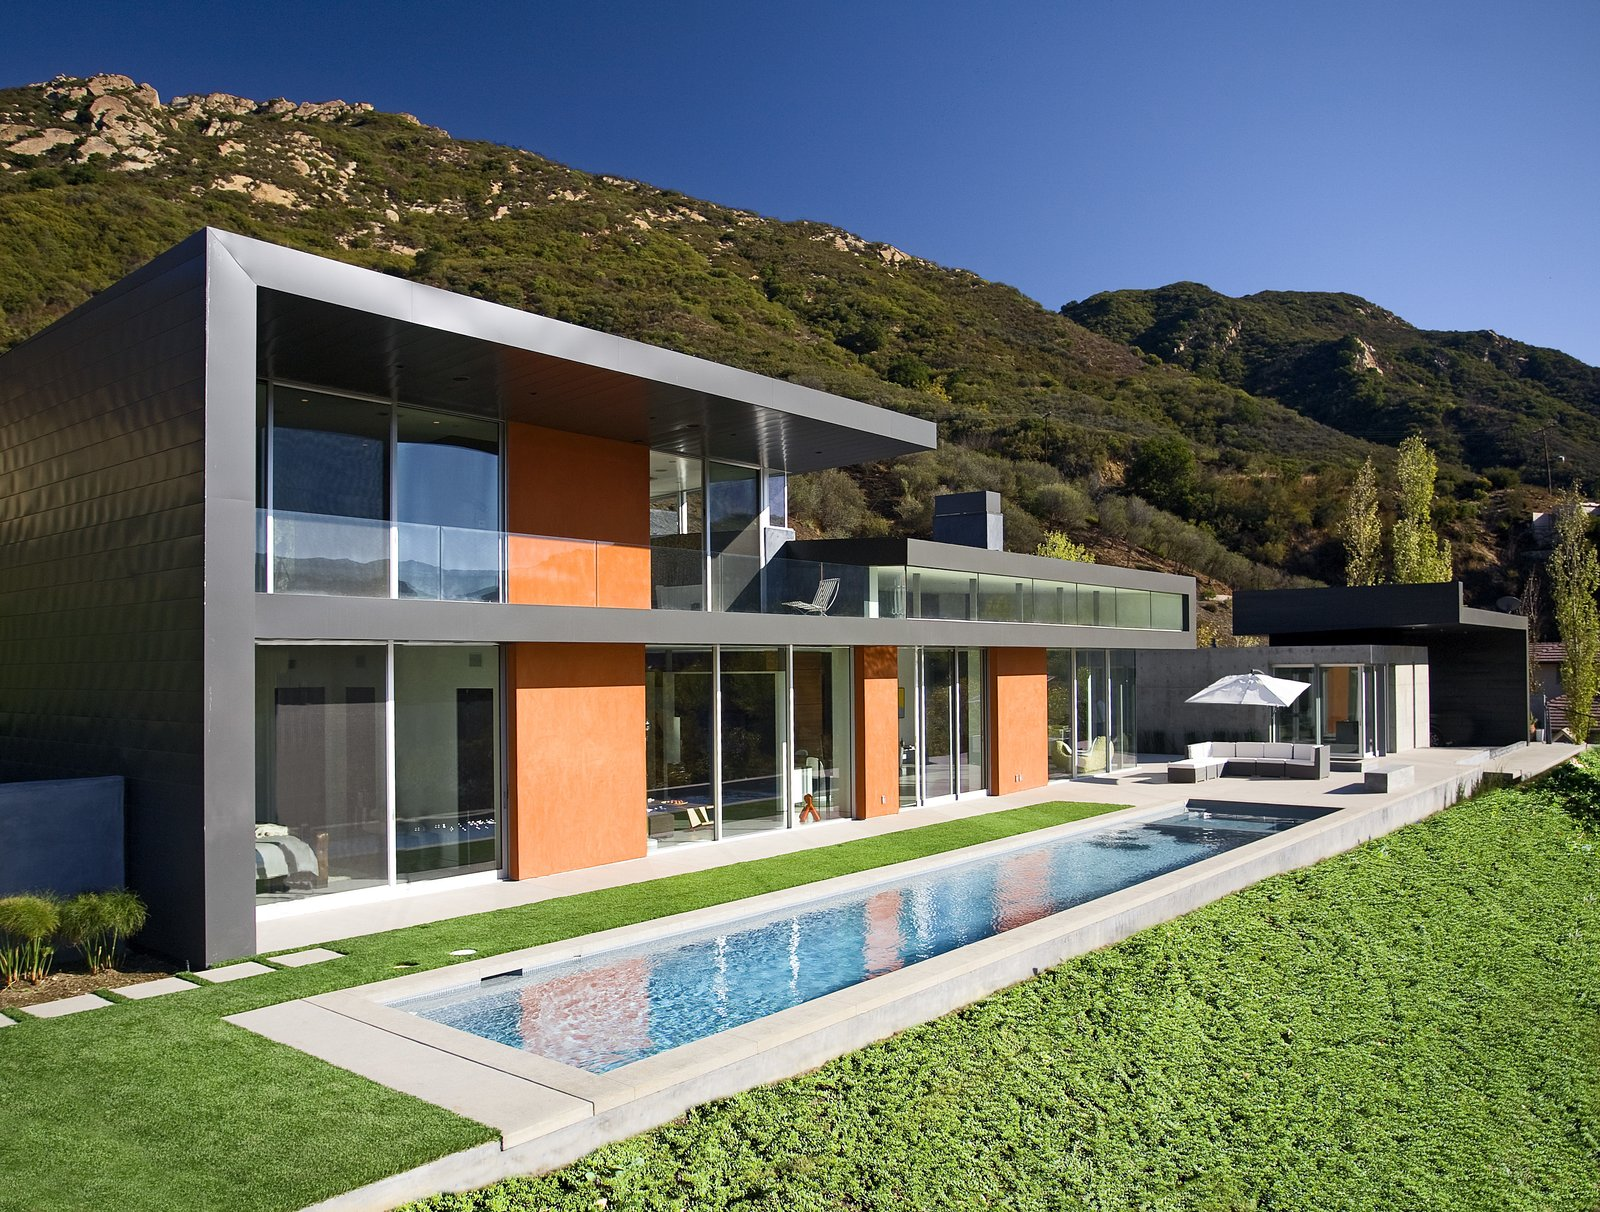 A narrow pool is nestled into the back yard next to an outdoor living area.   Lima Residence by Abramson Teiger Architects